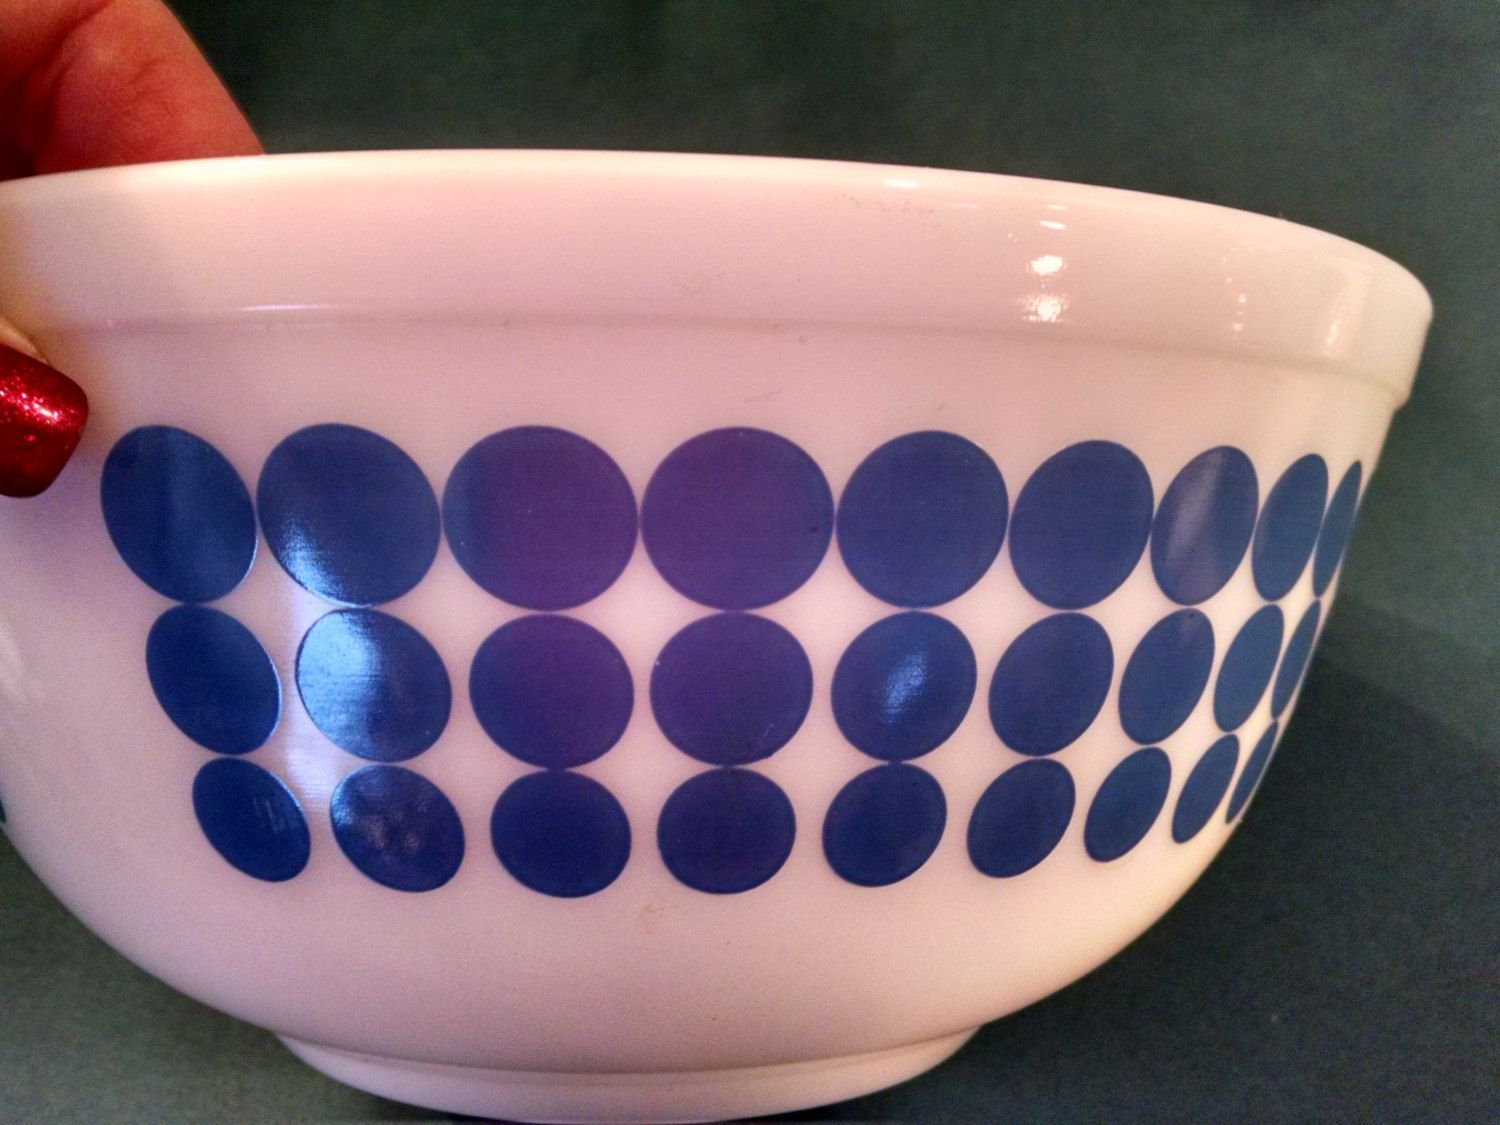 Vintage Pyrex, New blue dot in Excellent condition, 403 2 1/2 quart, Pyrex nesting bowl, new blue dot nesting bowl, Pyrex, Vintage Pyrex by Vintagepetalpushers on Etsy